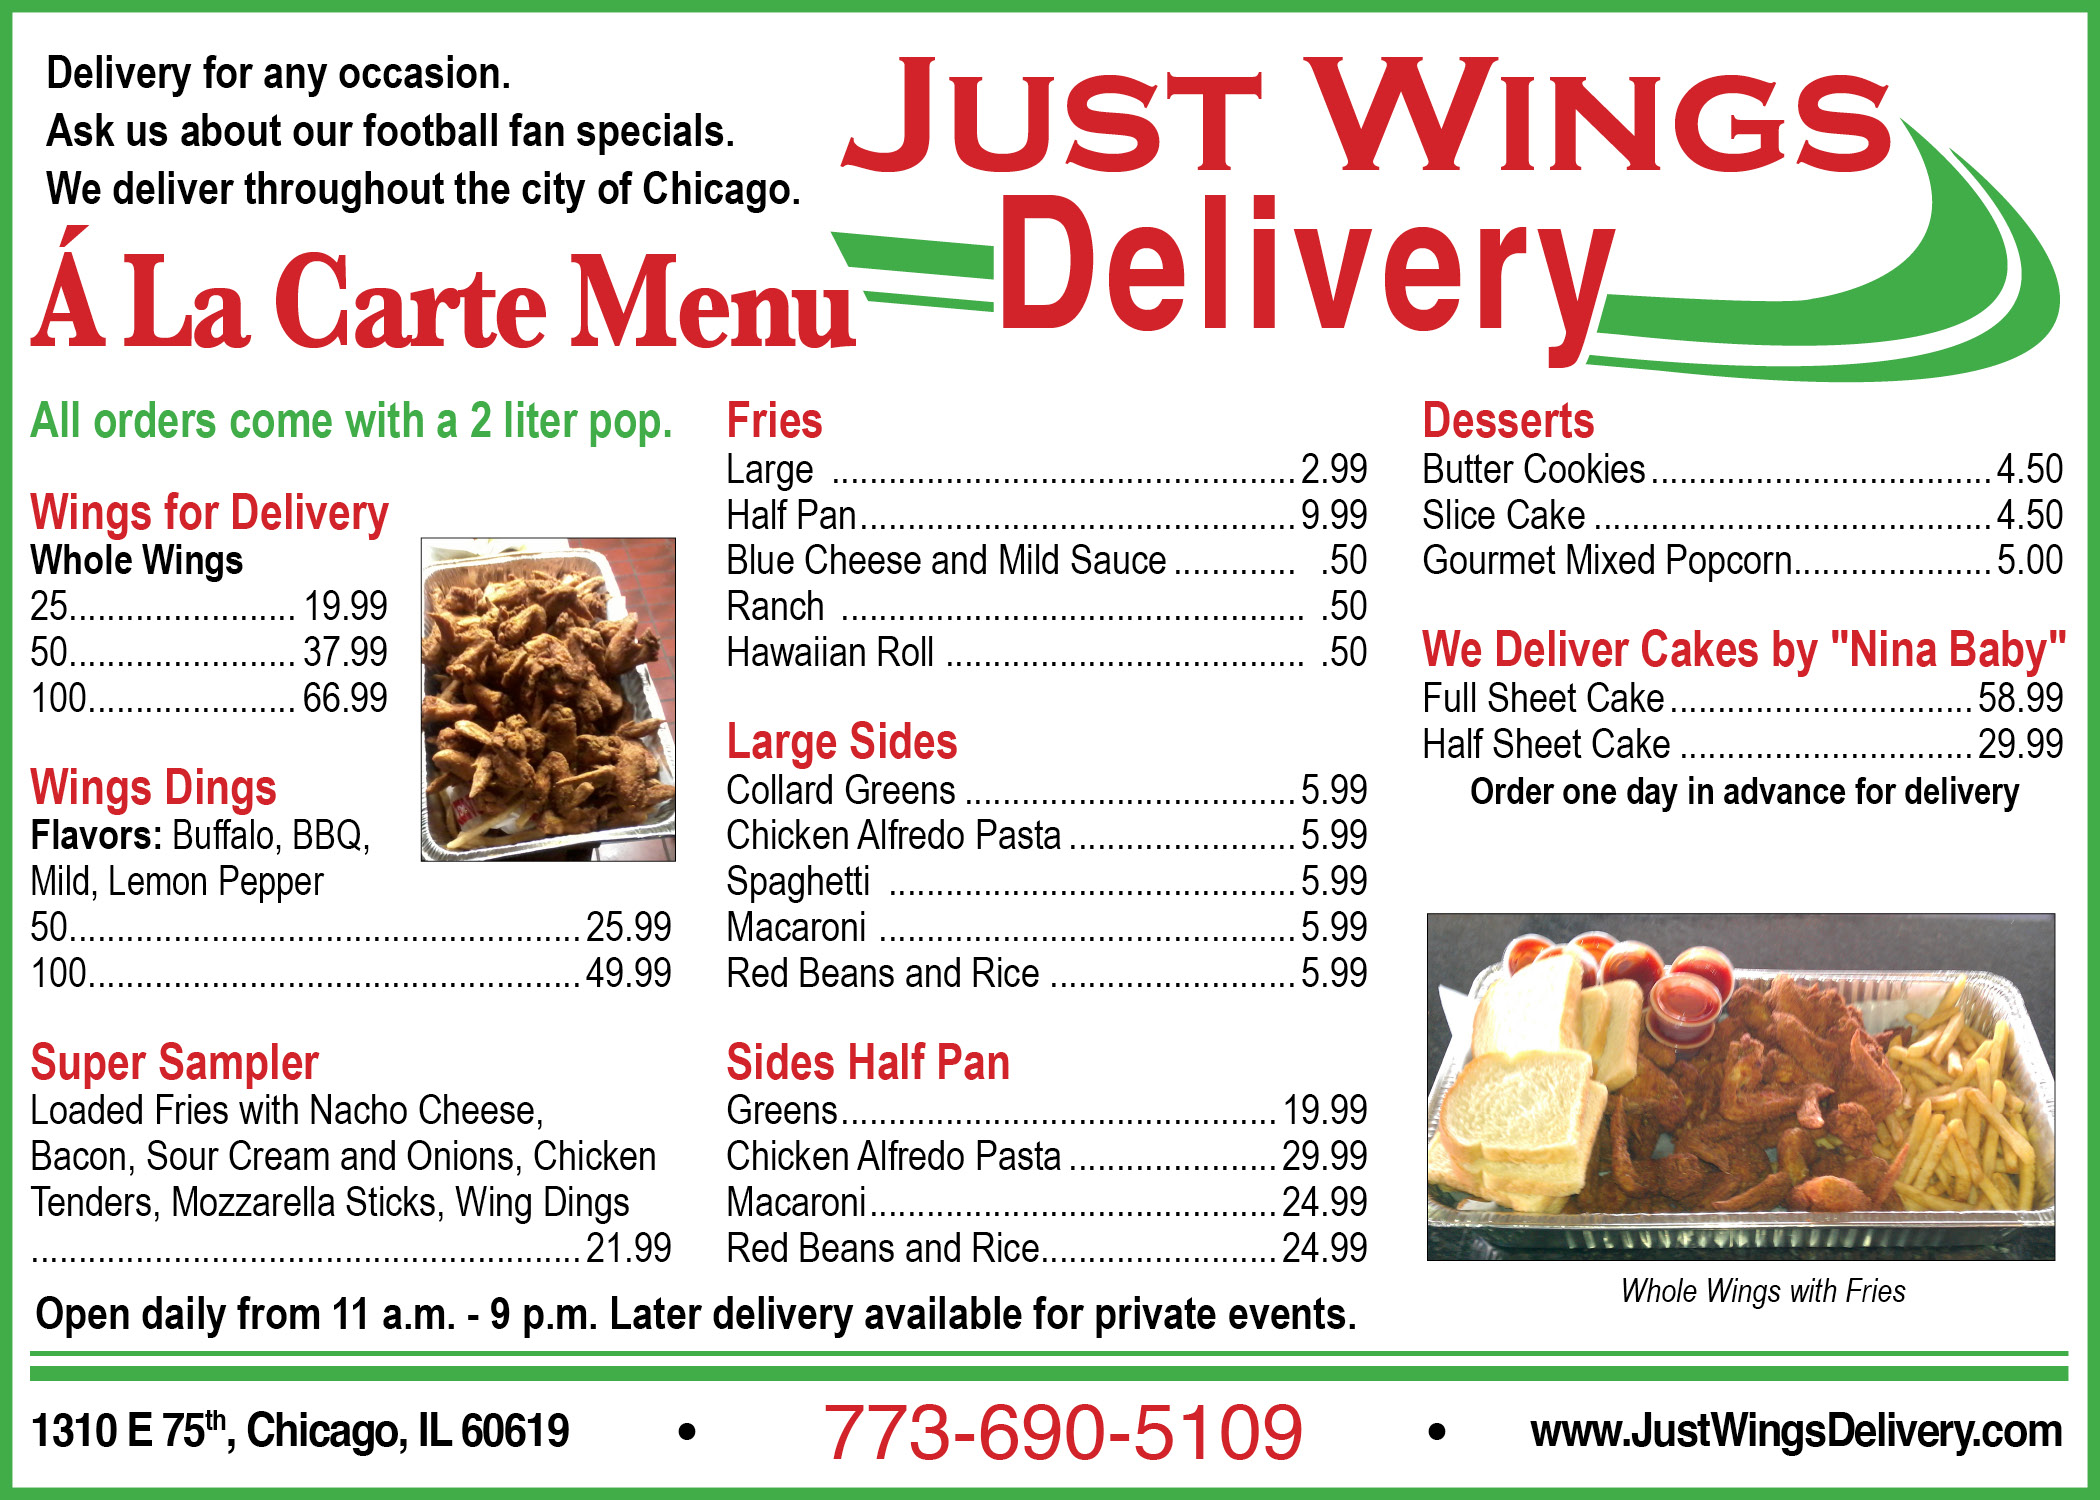 Just Wings Delivery